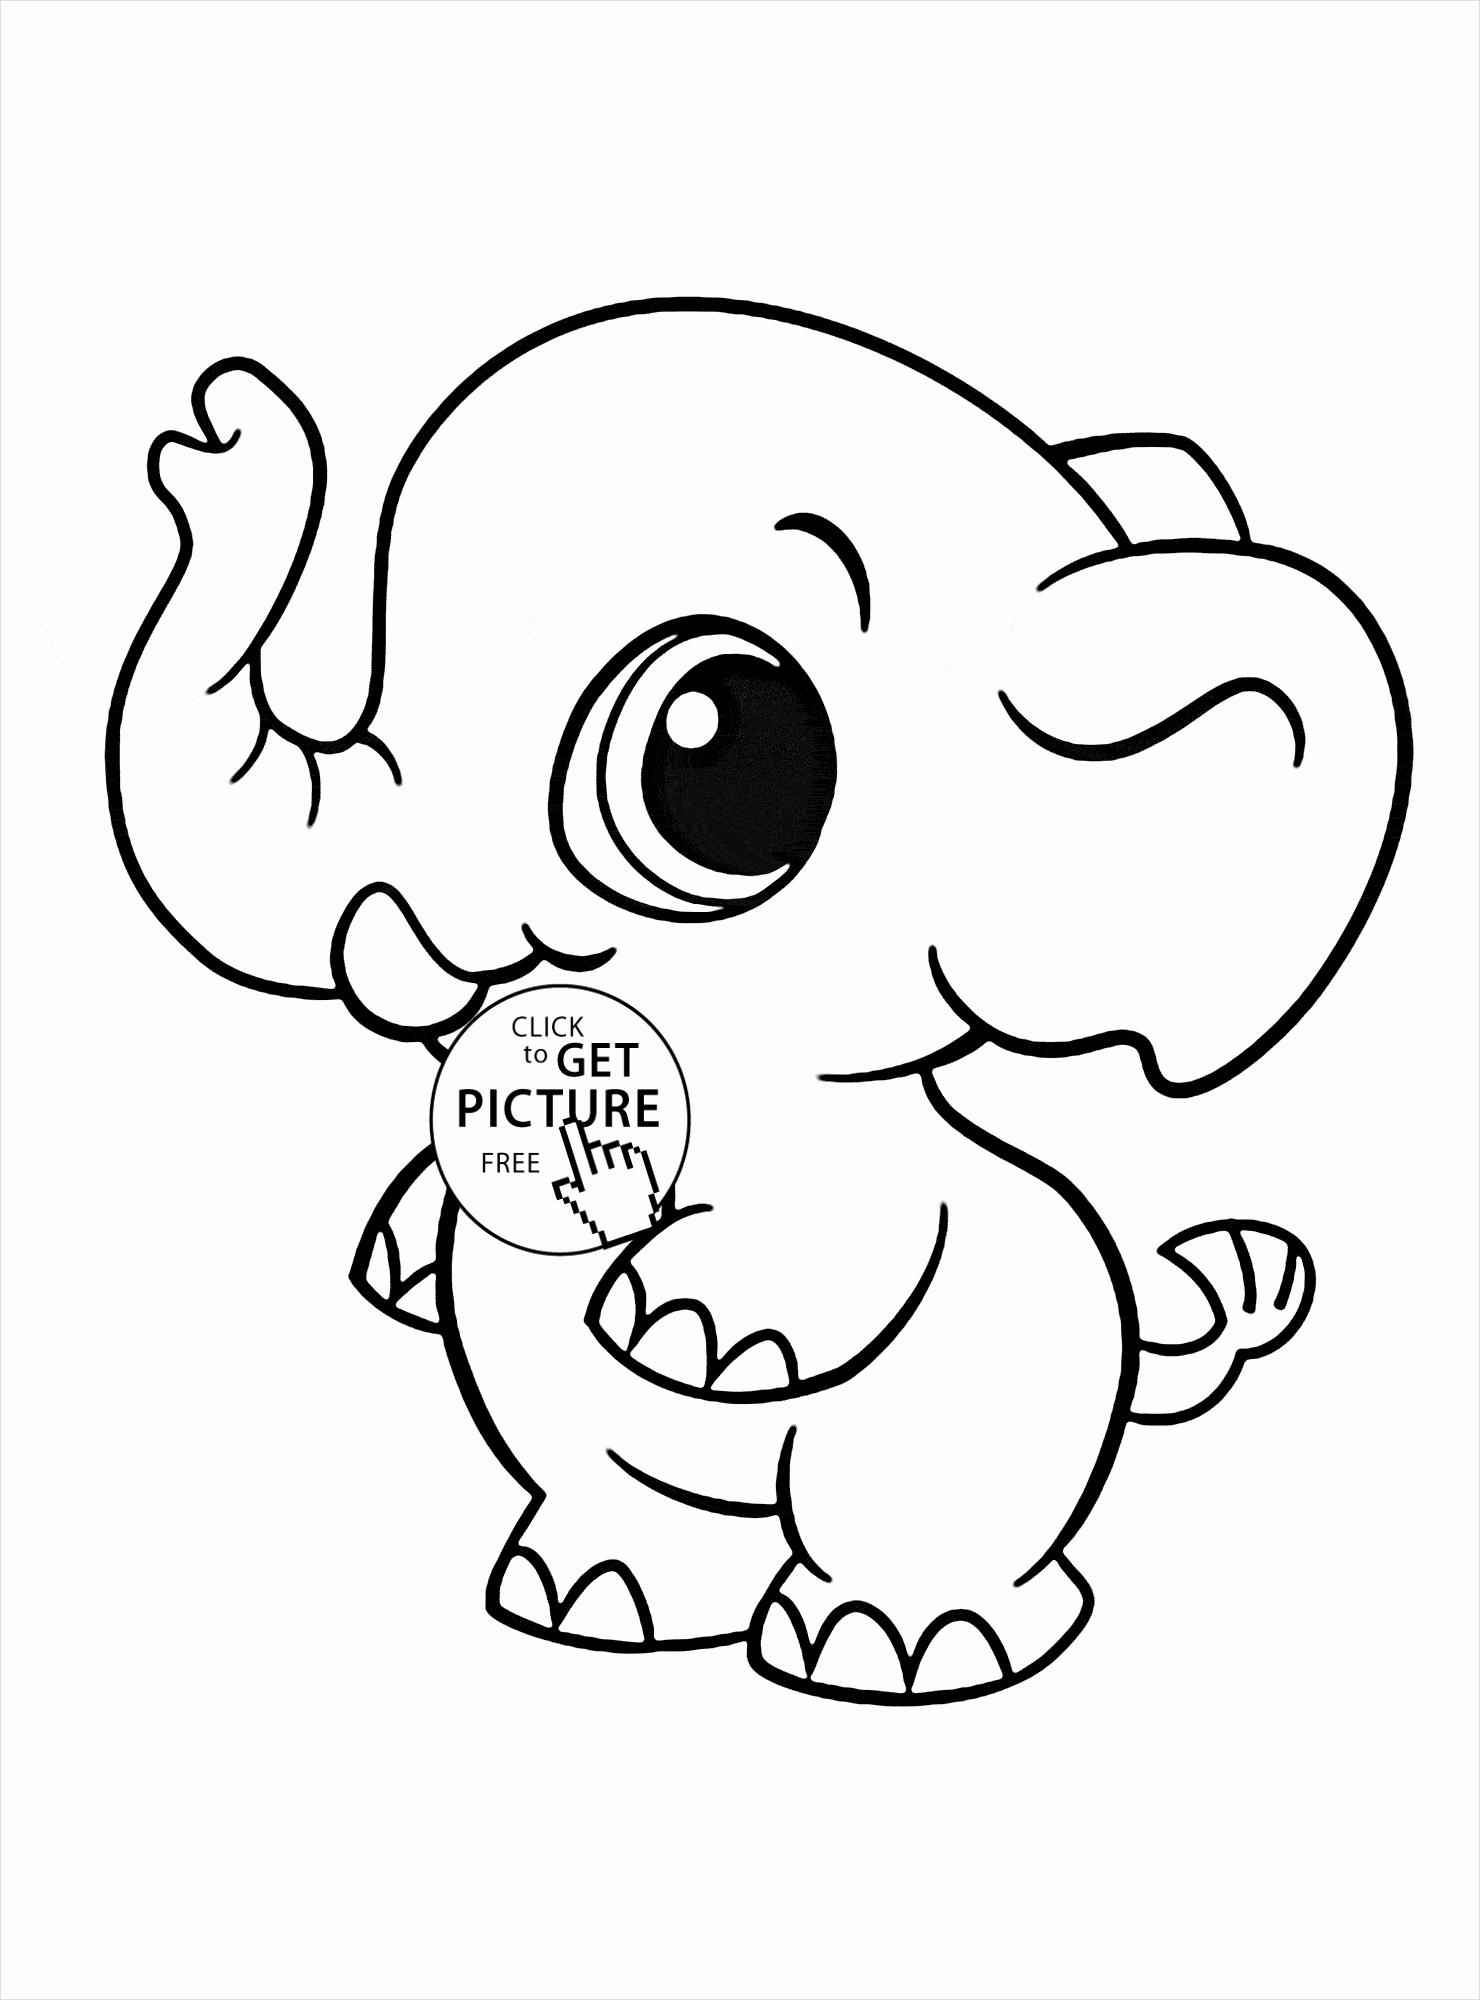 Simplified Baby Shower Coloring Pages Print Me 3908 With Plans 7 - Free Printable Baby Shower Coloring Pages